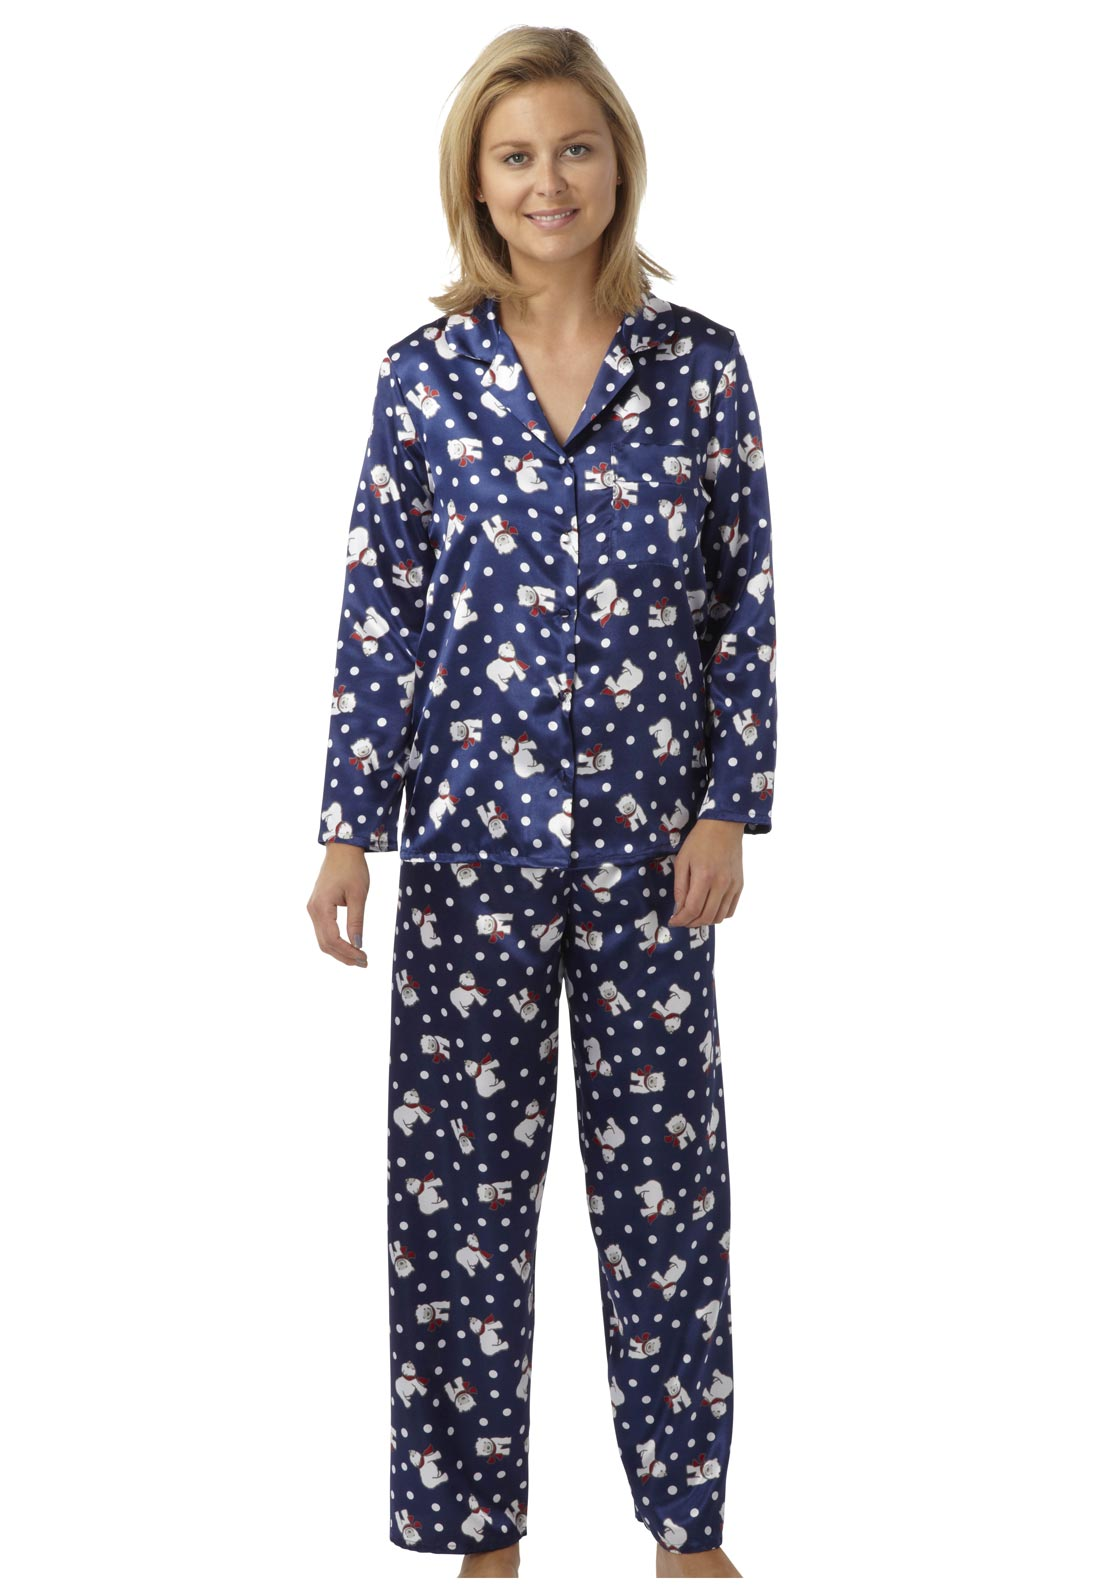 Indigo Sky Polar Bear Satin Pyjamas, Navy